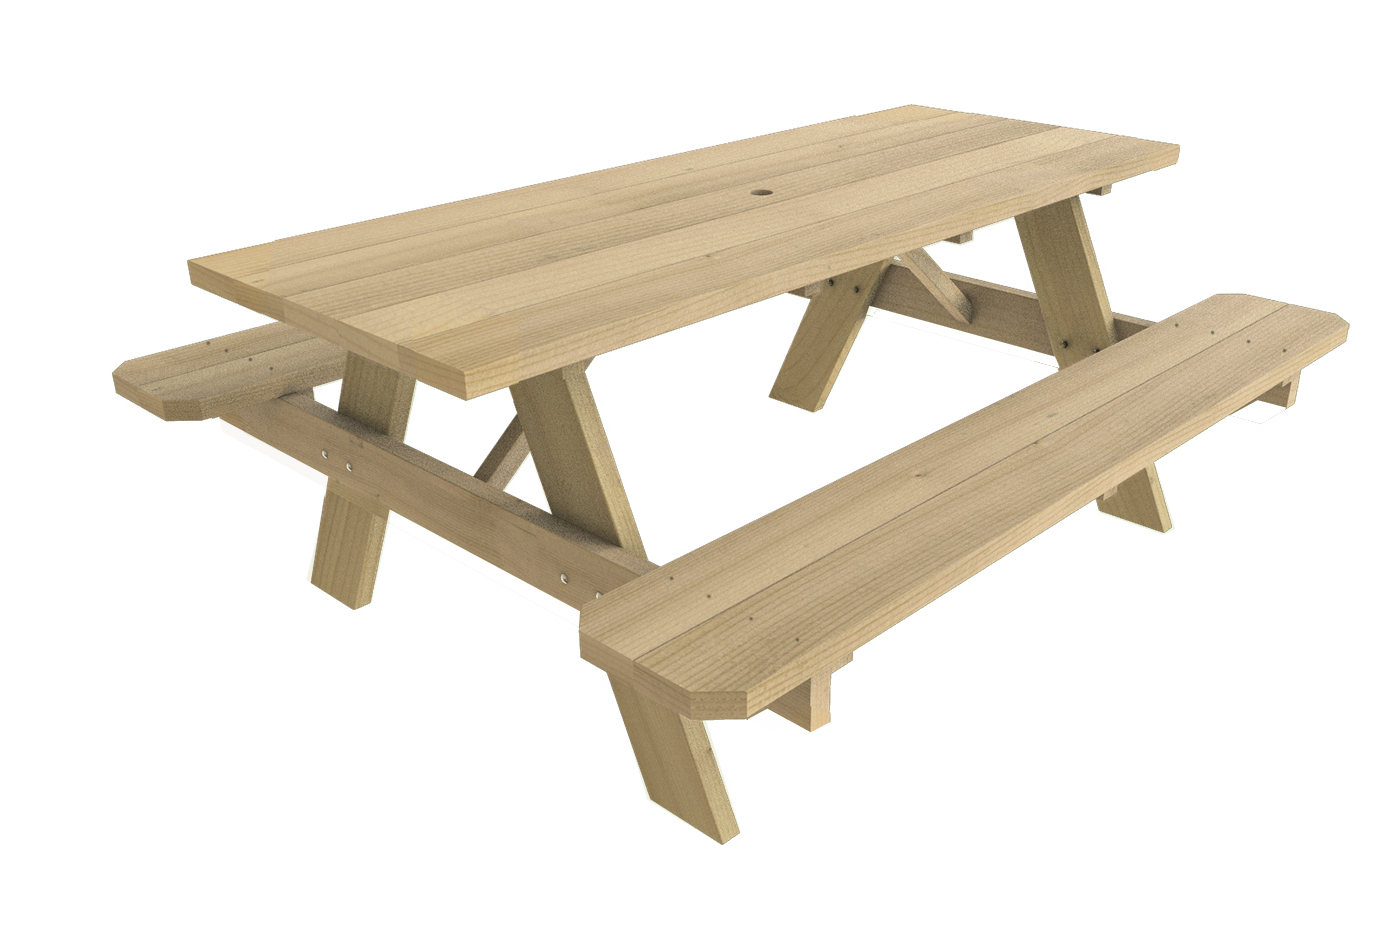 Picnic Table Kit, 2x6 Pt W/umbrella Hole   Walmart.com